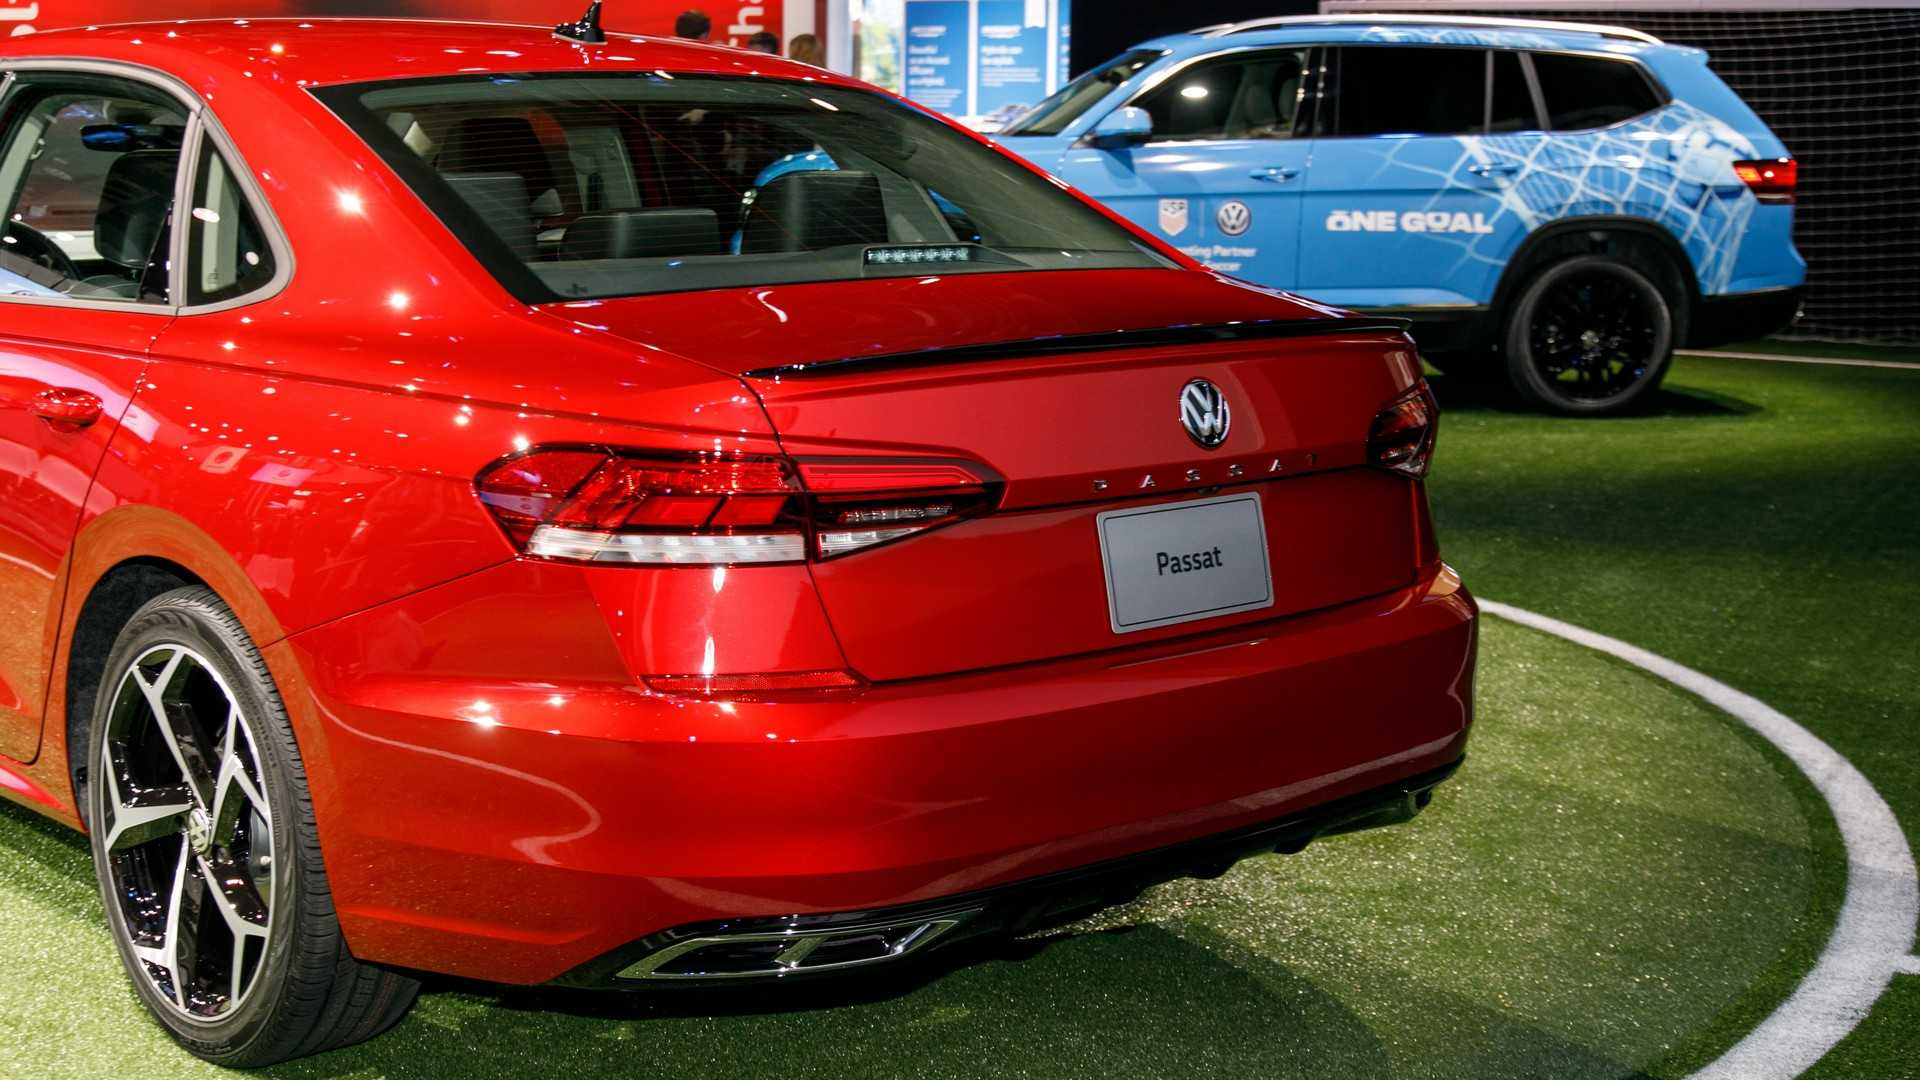 74 All New 2020 Volkswagen Passat Concept And Review